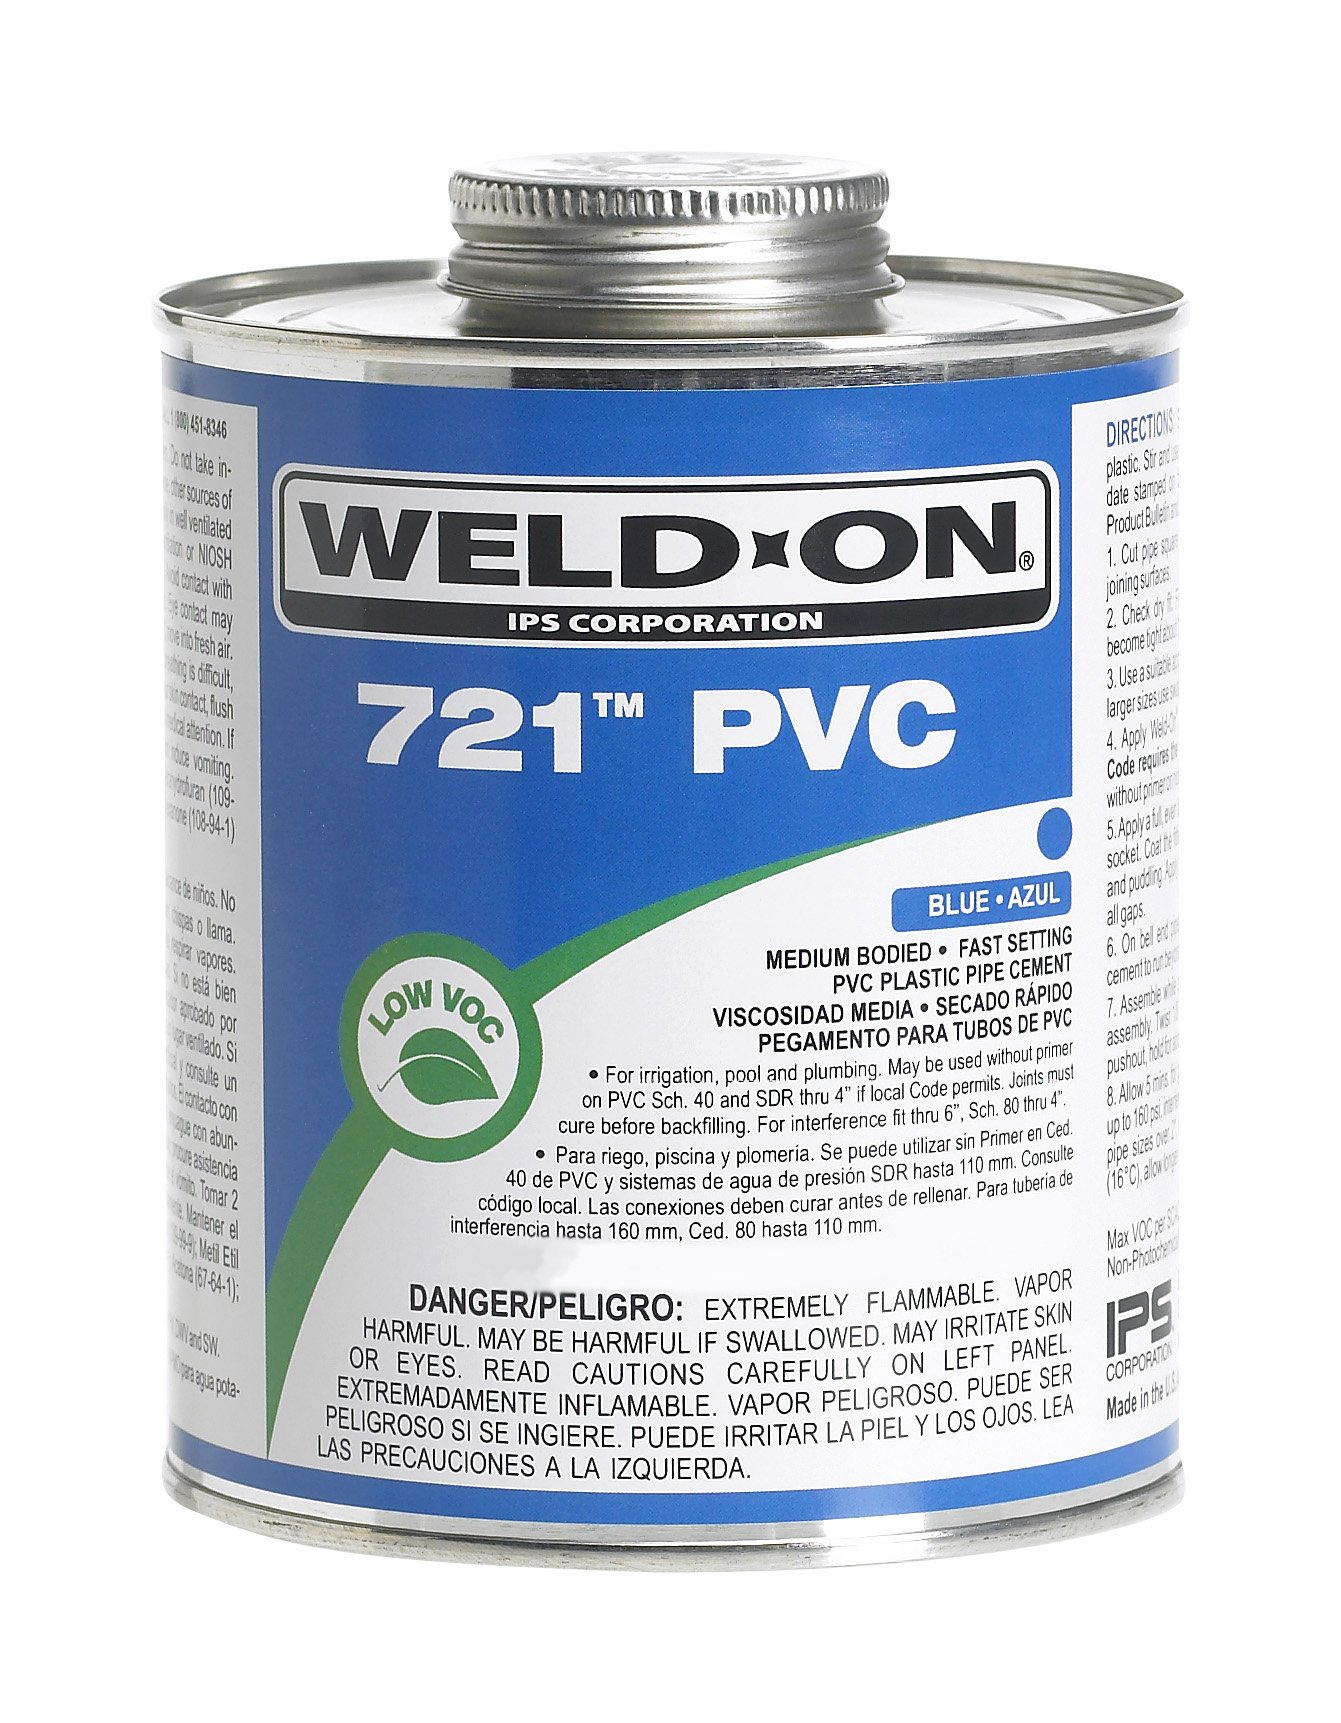 Weld-On 10160 Blue 721 Medium-Bodied PVC Professional Industrial-Grade Cement, Fast-Setting, Low-VOC, 1 gallon Can with Screw-on Cap